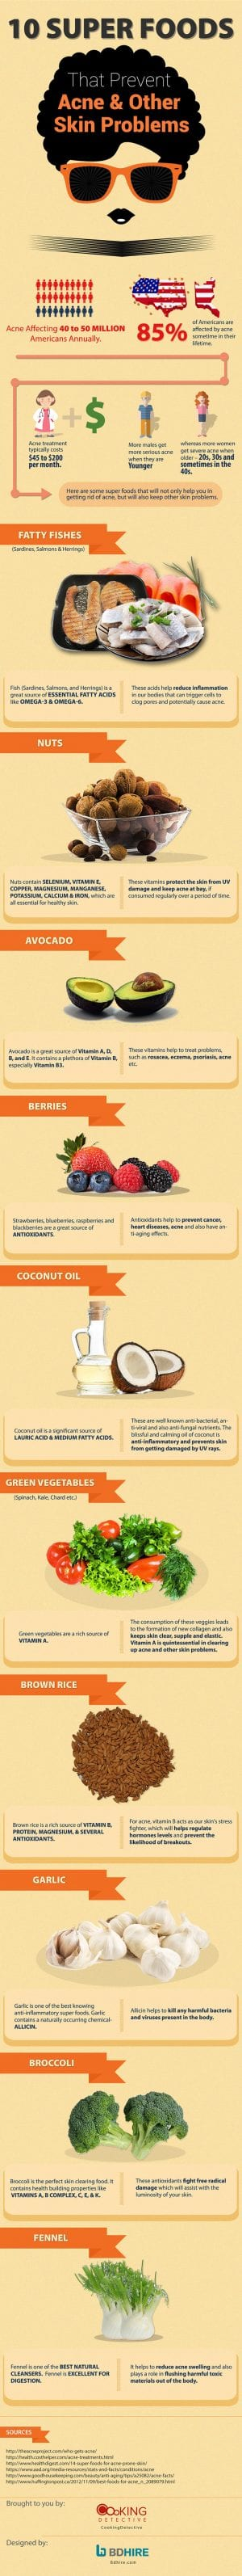 Super Foods That Prevent Acne & Skin Problems